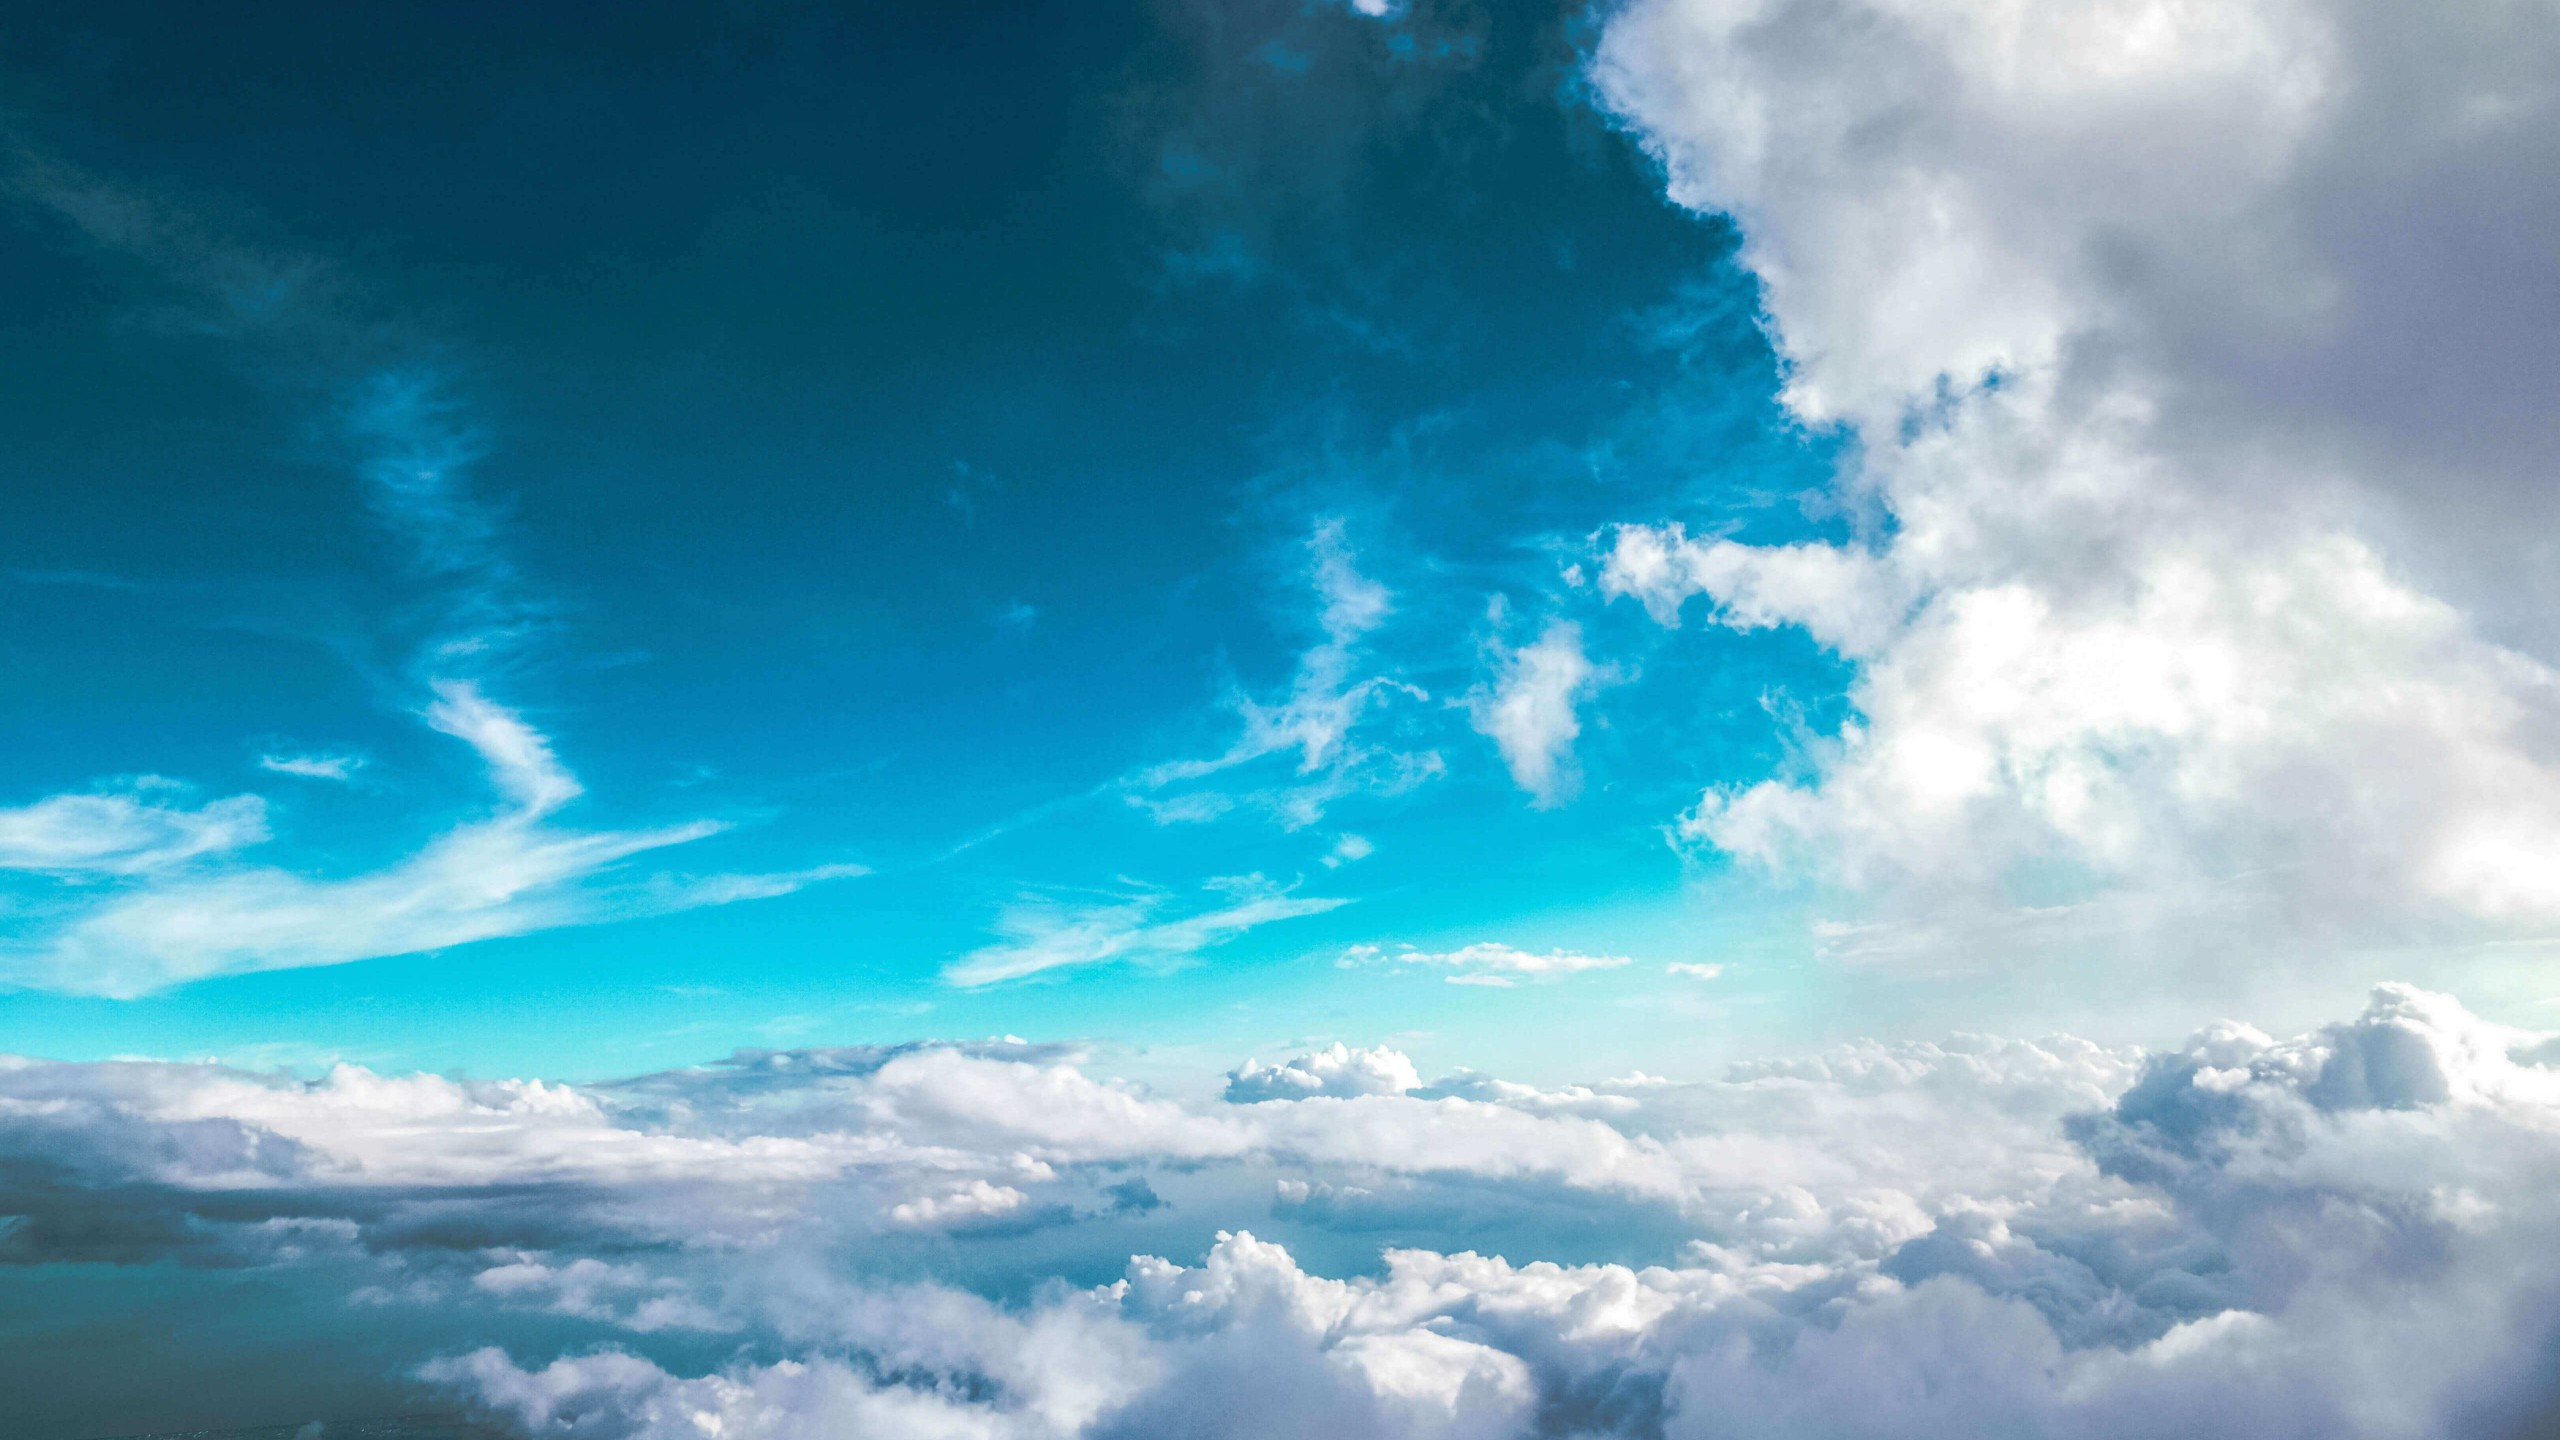 Cloudy Blue Sky Wallpaper for Social Media YouTube Channel Art